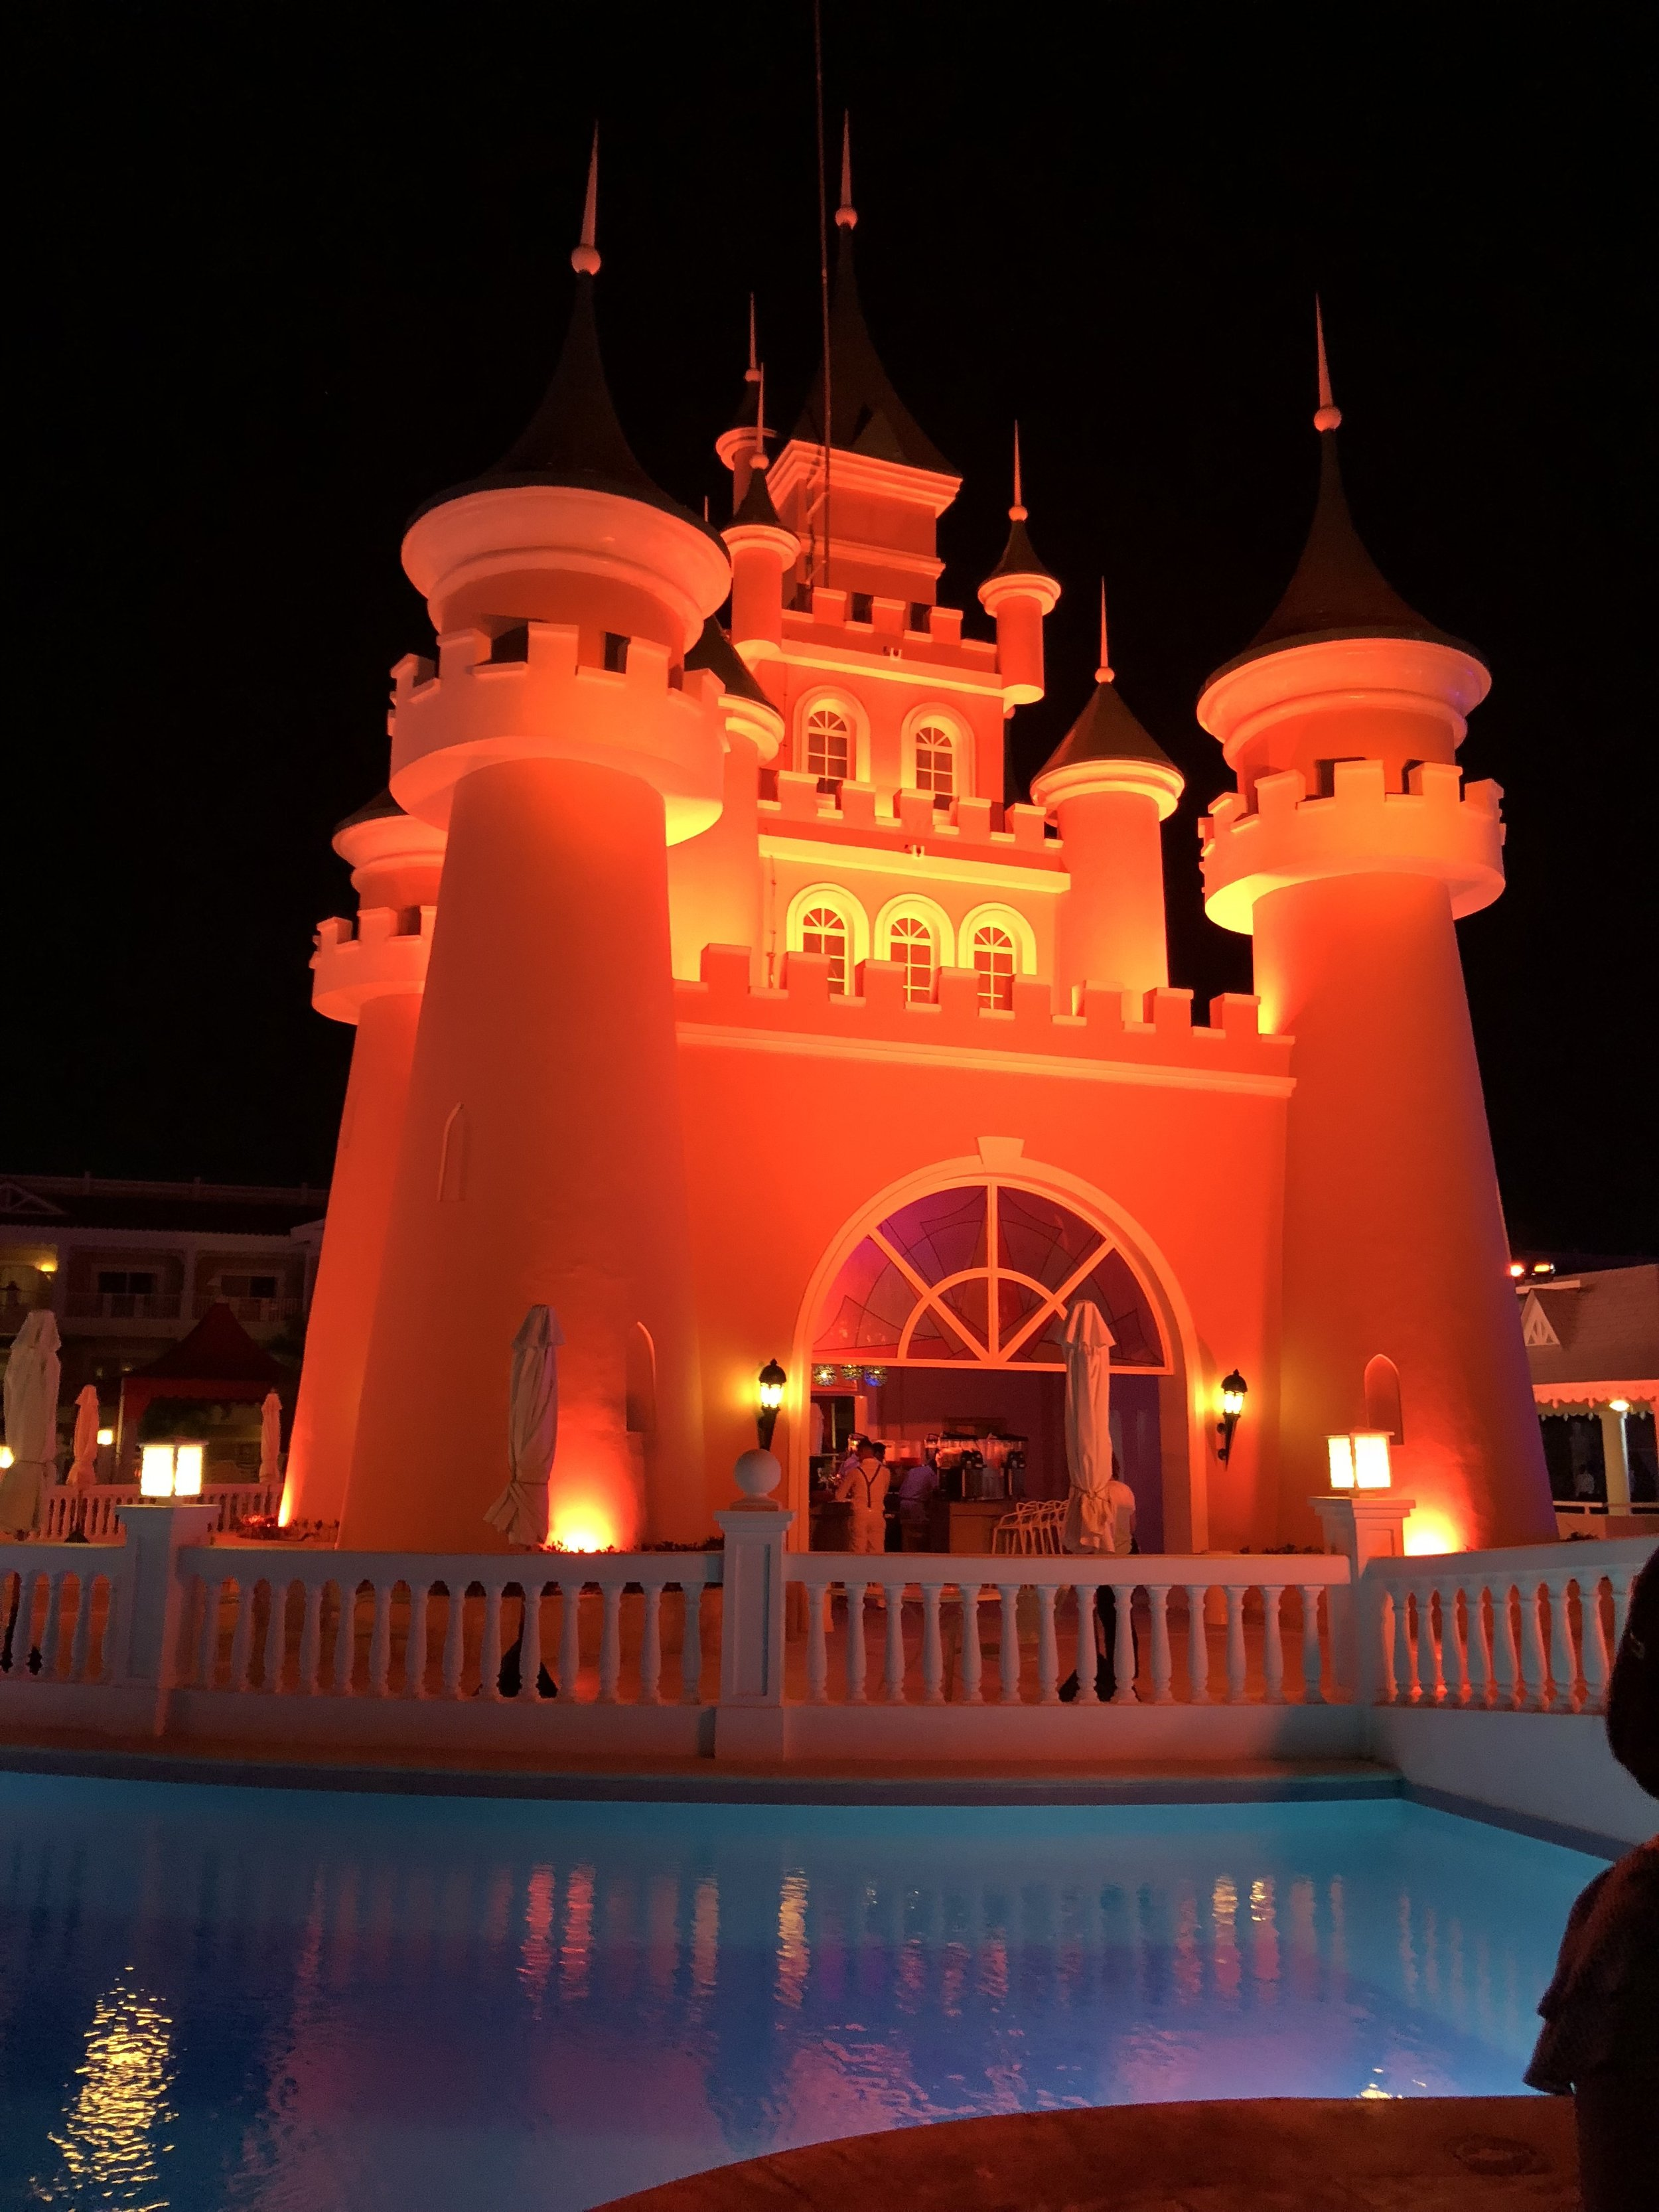 A close up of the castle at night.